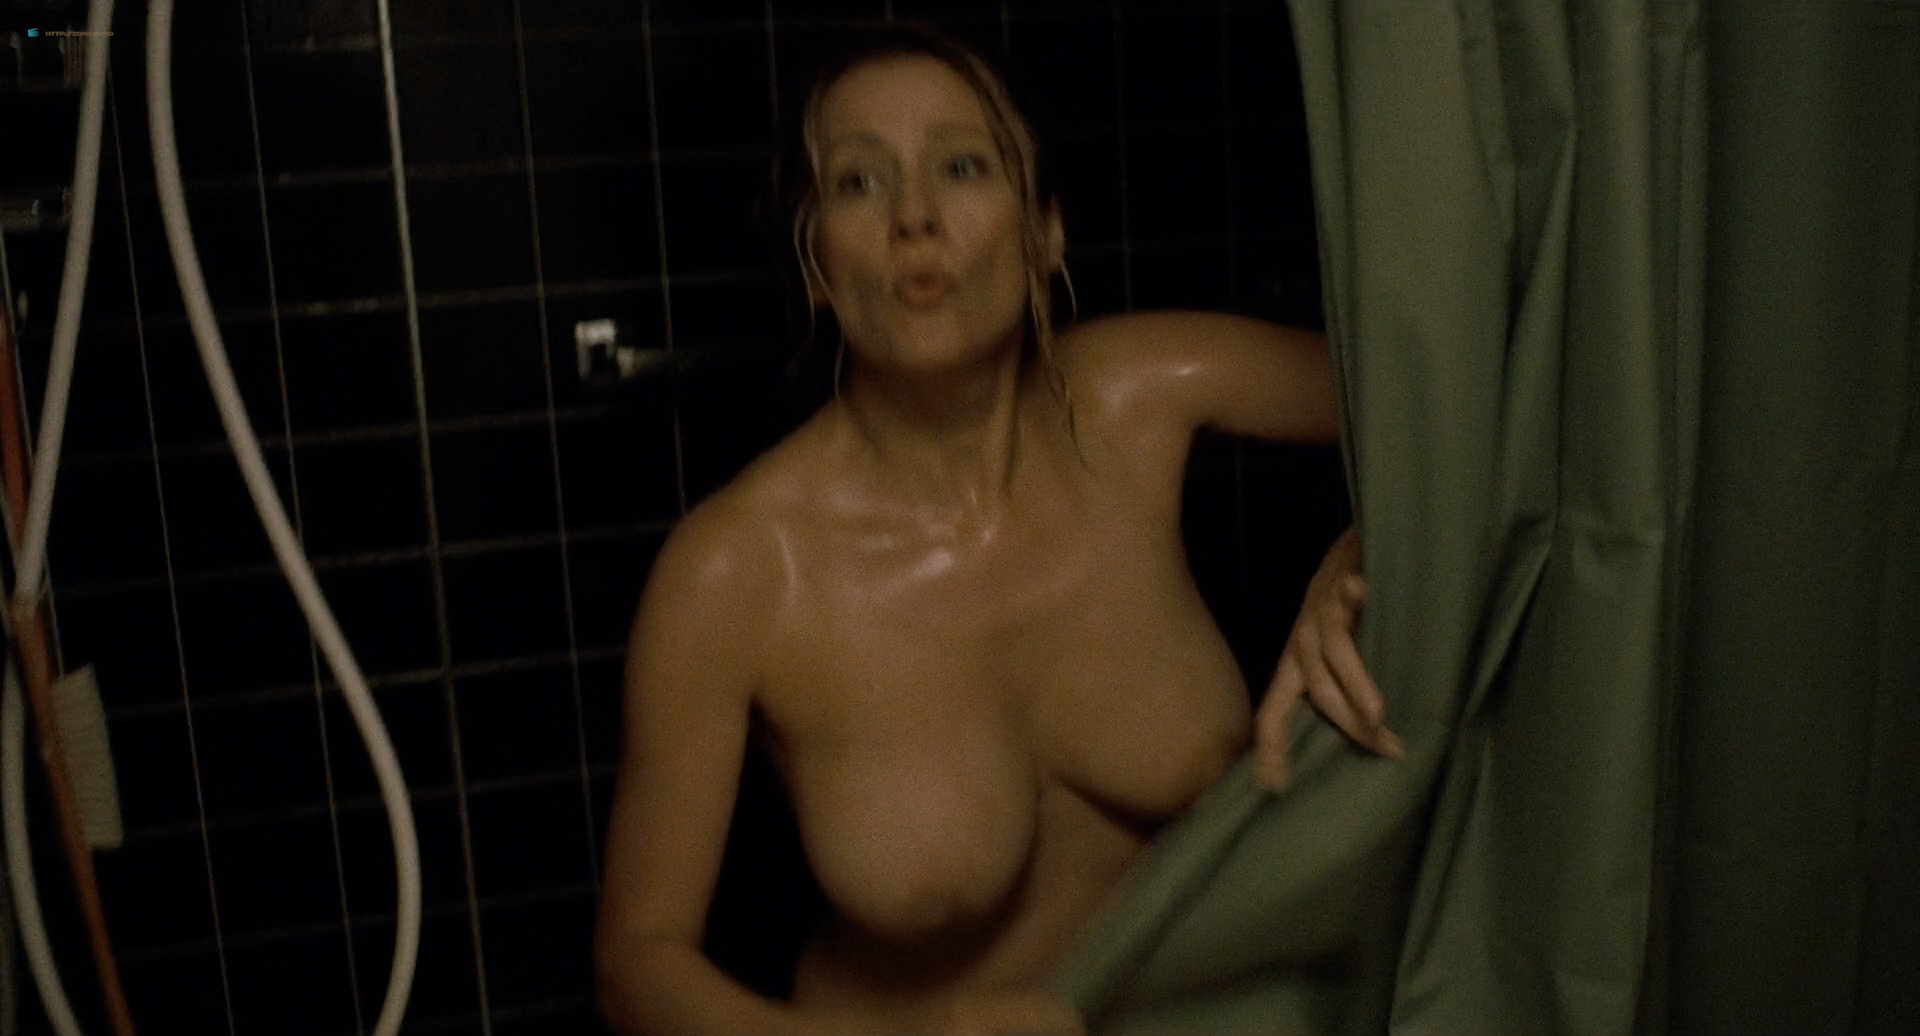 Paula Morgan Nude Topless In The Shower  Closet Monster -7931